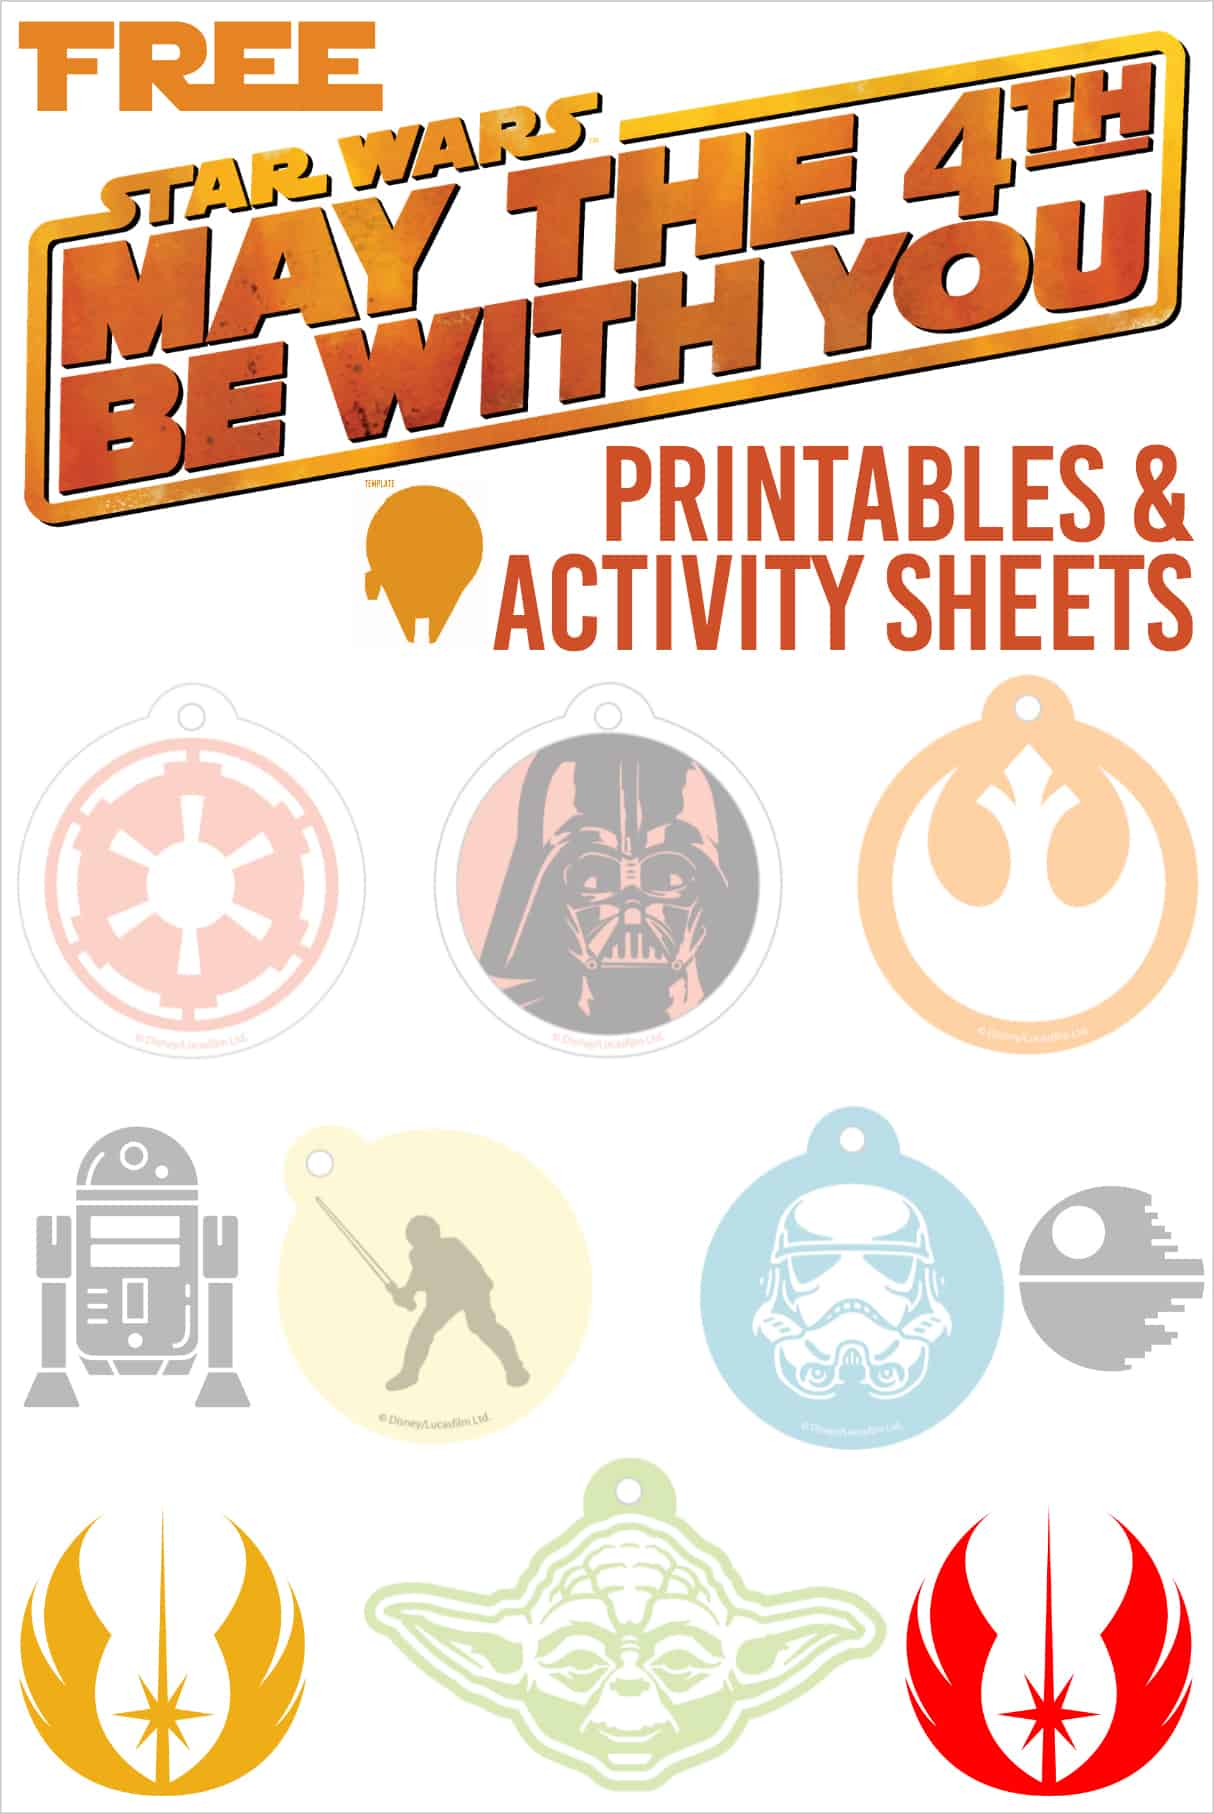 May the fourth be with you graphic for printables